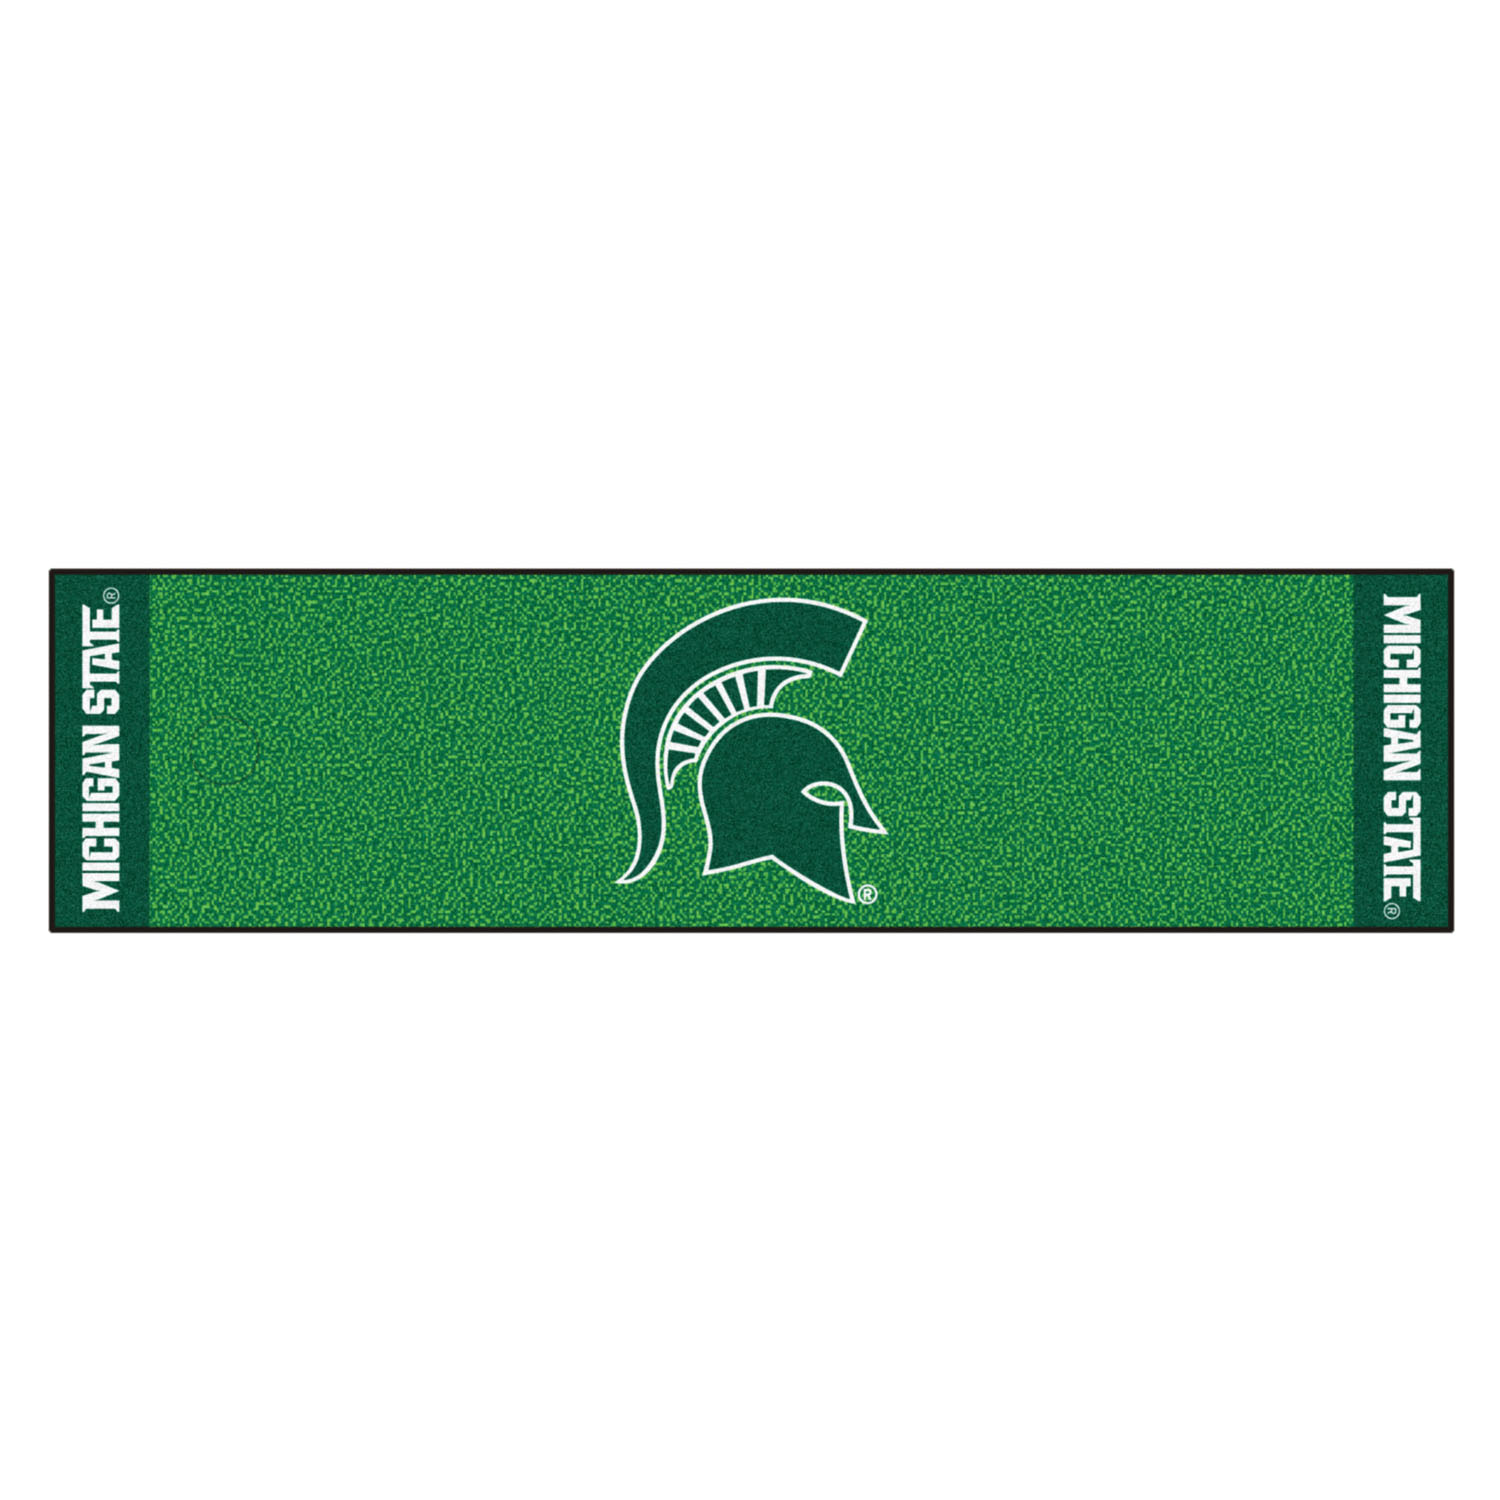 Fanmats Michigan State Putting Green Runner